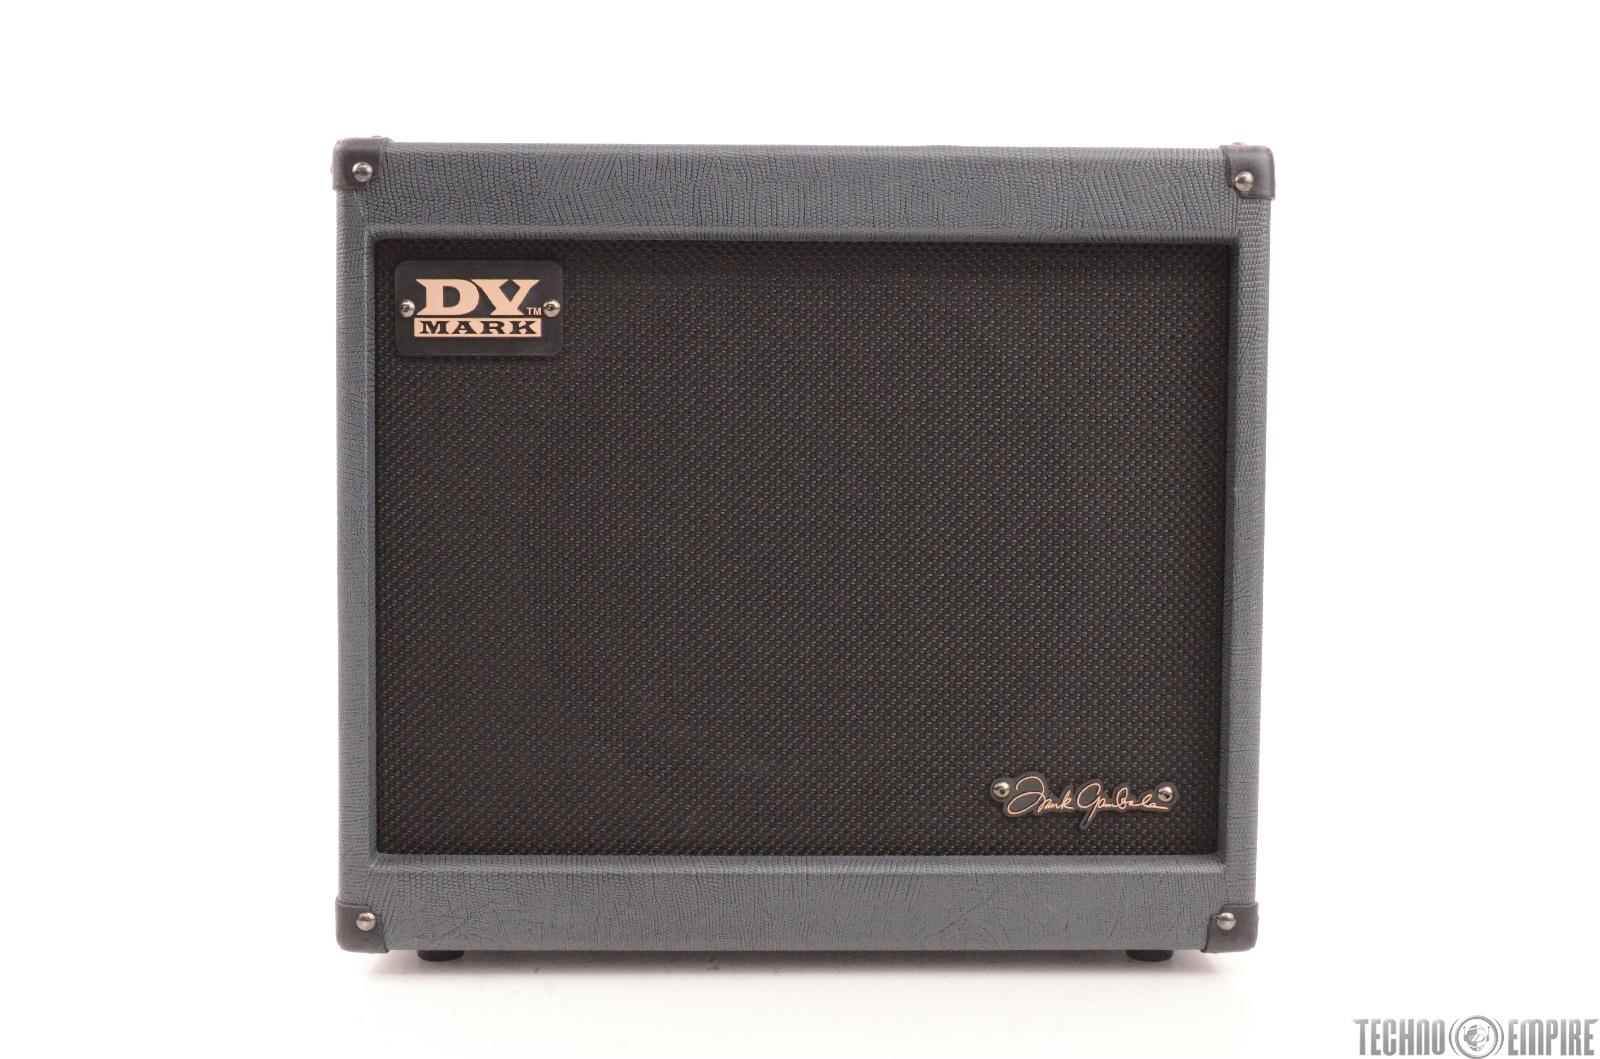 DV MARK FRANK GAMBALE Combo 112 Guitar Amplifier 1x12 Signed By FRANK! #26844